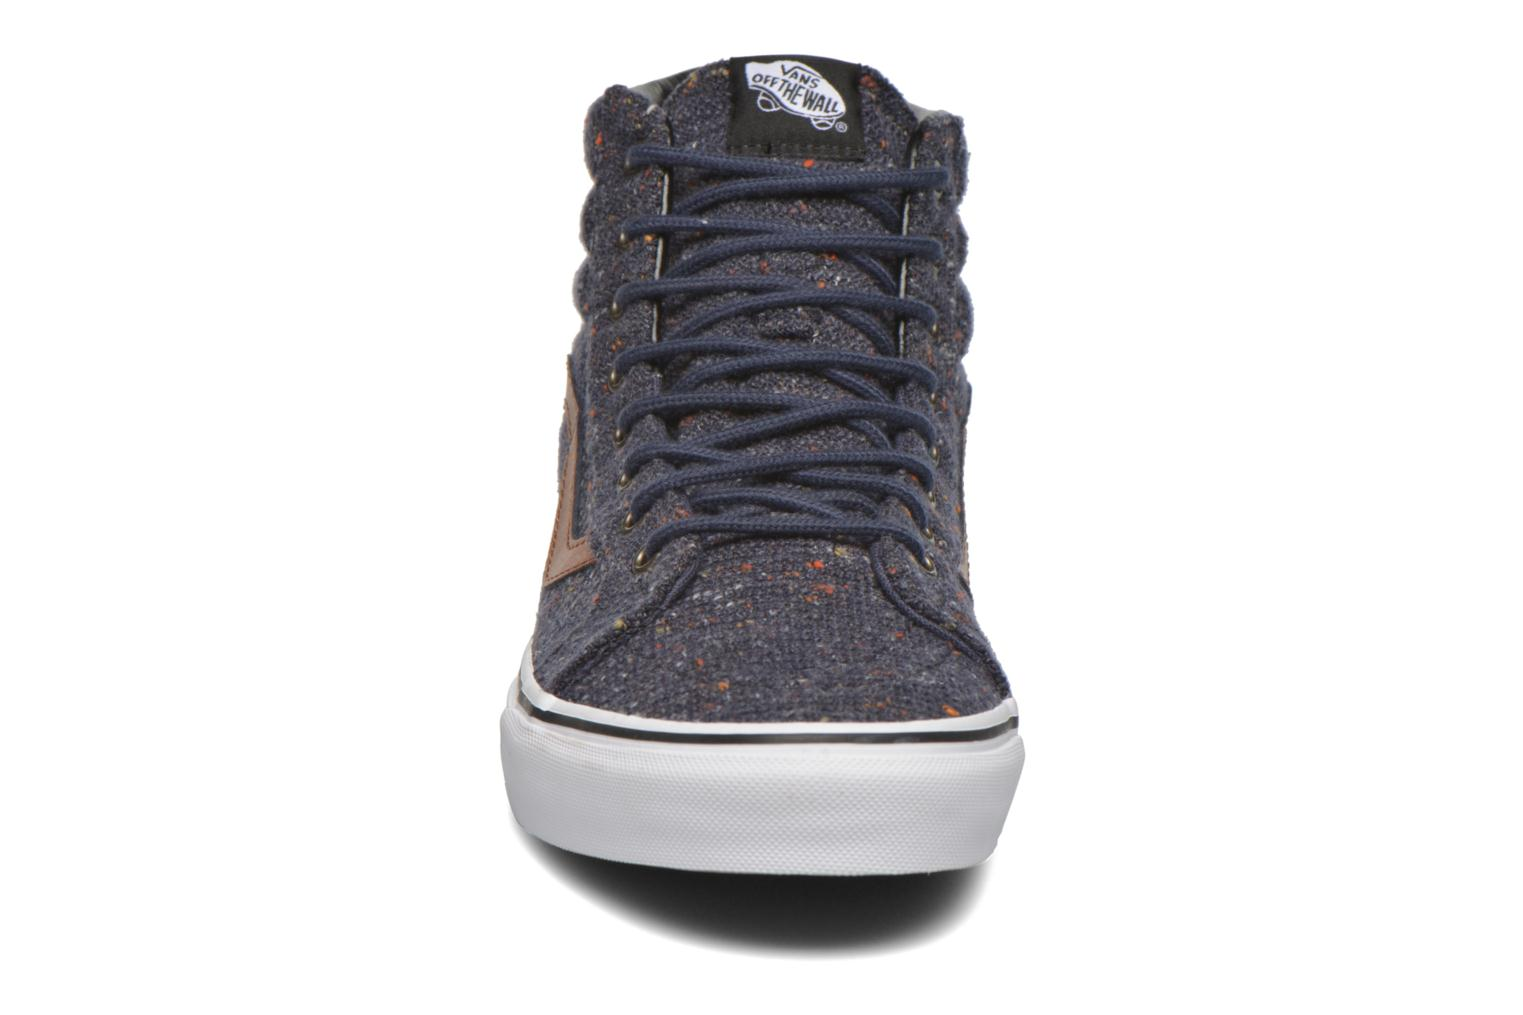 Sk8-Hi Reissue (Wool & Leather) Parisian Night/Tortoise Shell